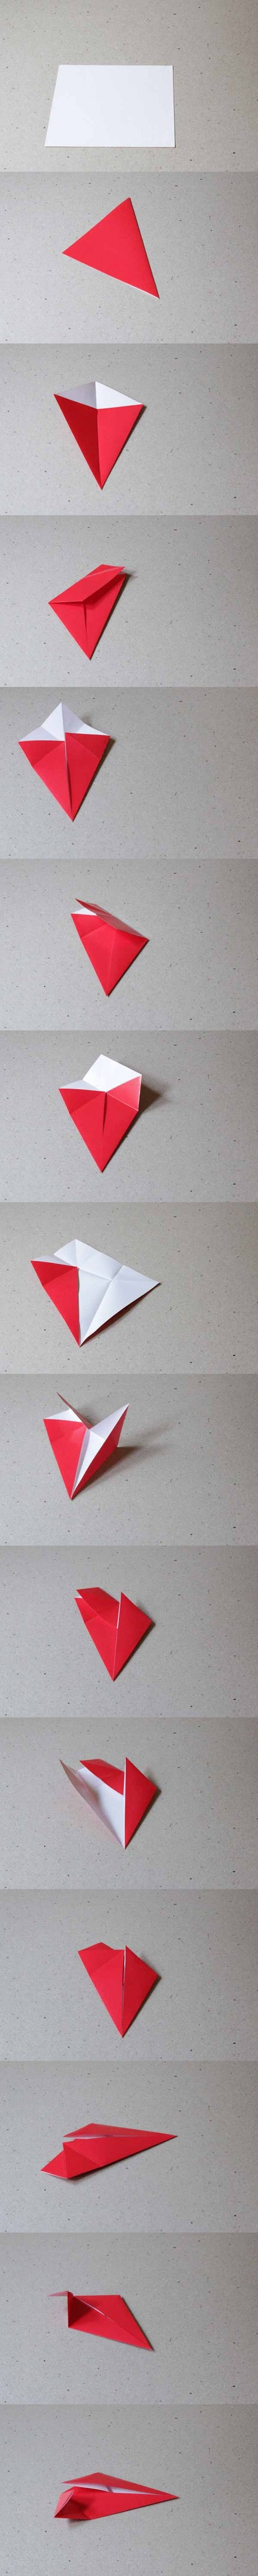 How to fold an origami shape. Origami Star - Step 1